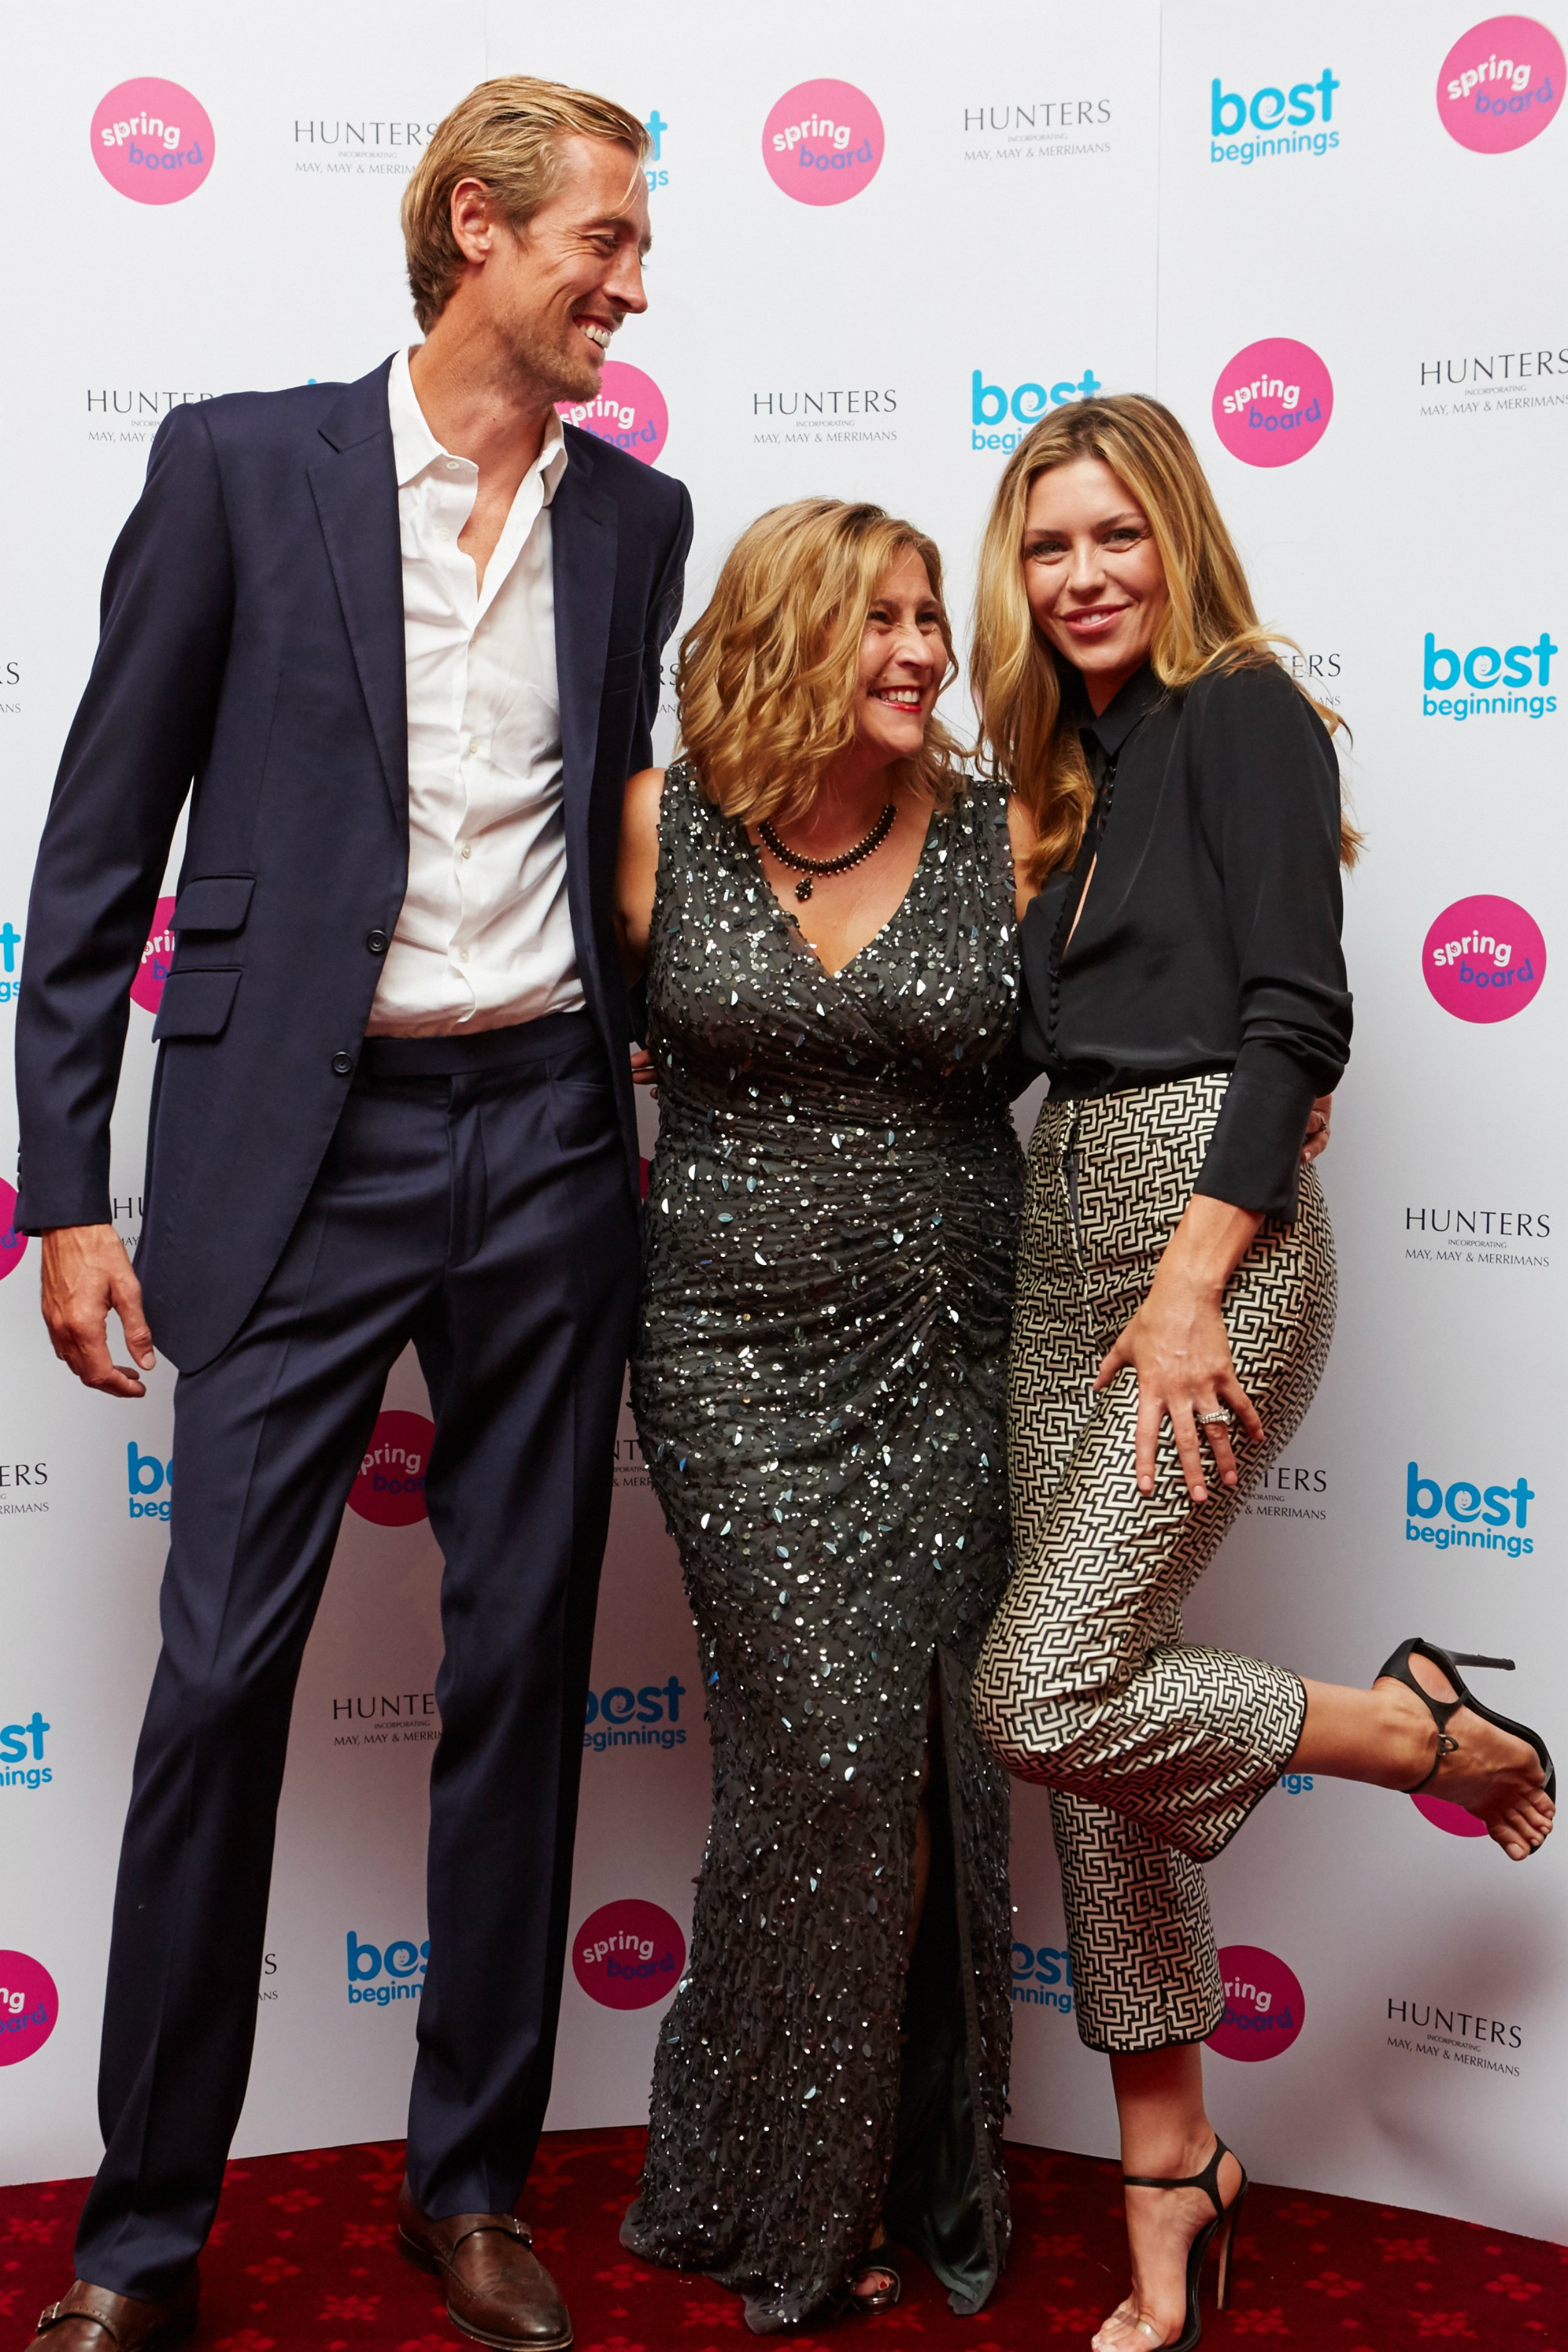 Footballer Peter Crouch (L) and his wife, model and TV presenter Abbey Clancey (R) share a joke with Best Beginnings CEO, Alison Baum, at the Springboard launch event.